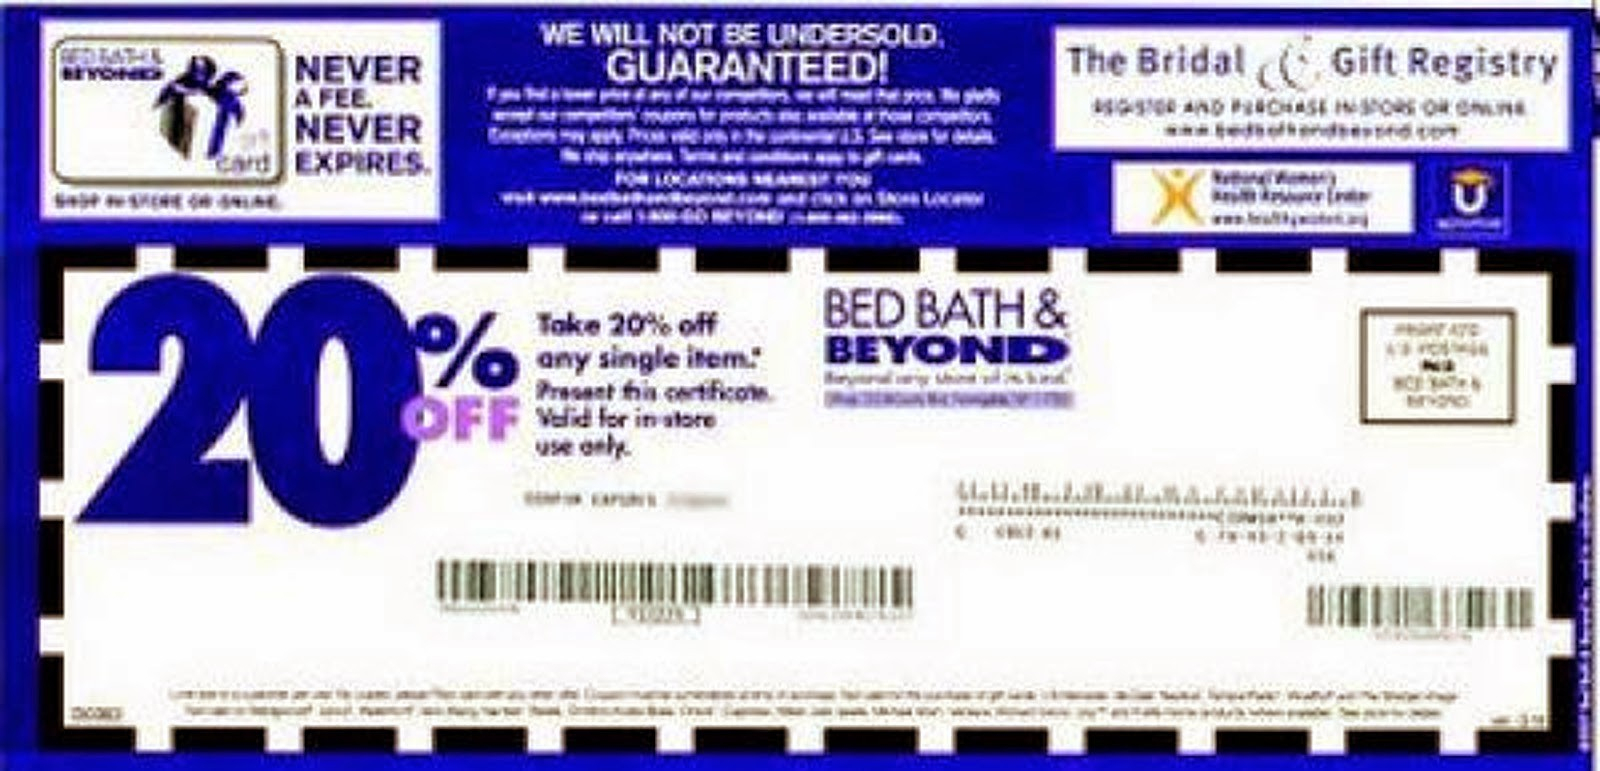 Bed Bath And Beyond Coupons 20 Off Printable Coupon - Mysembalun - Free Printable Bed Bath And Beyond Coupon 2019